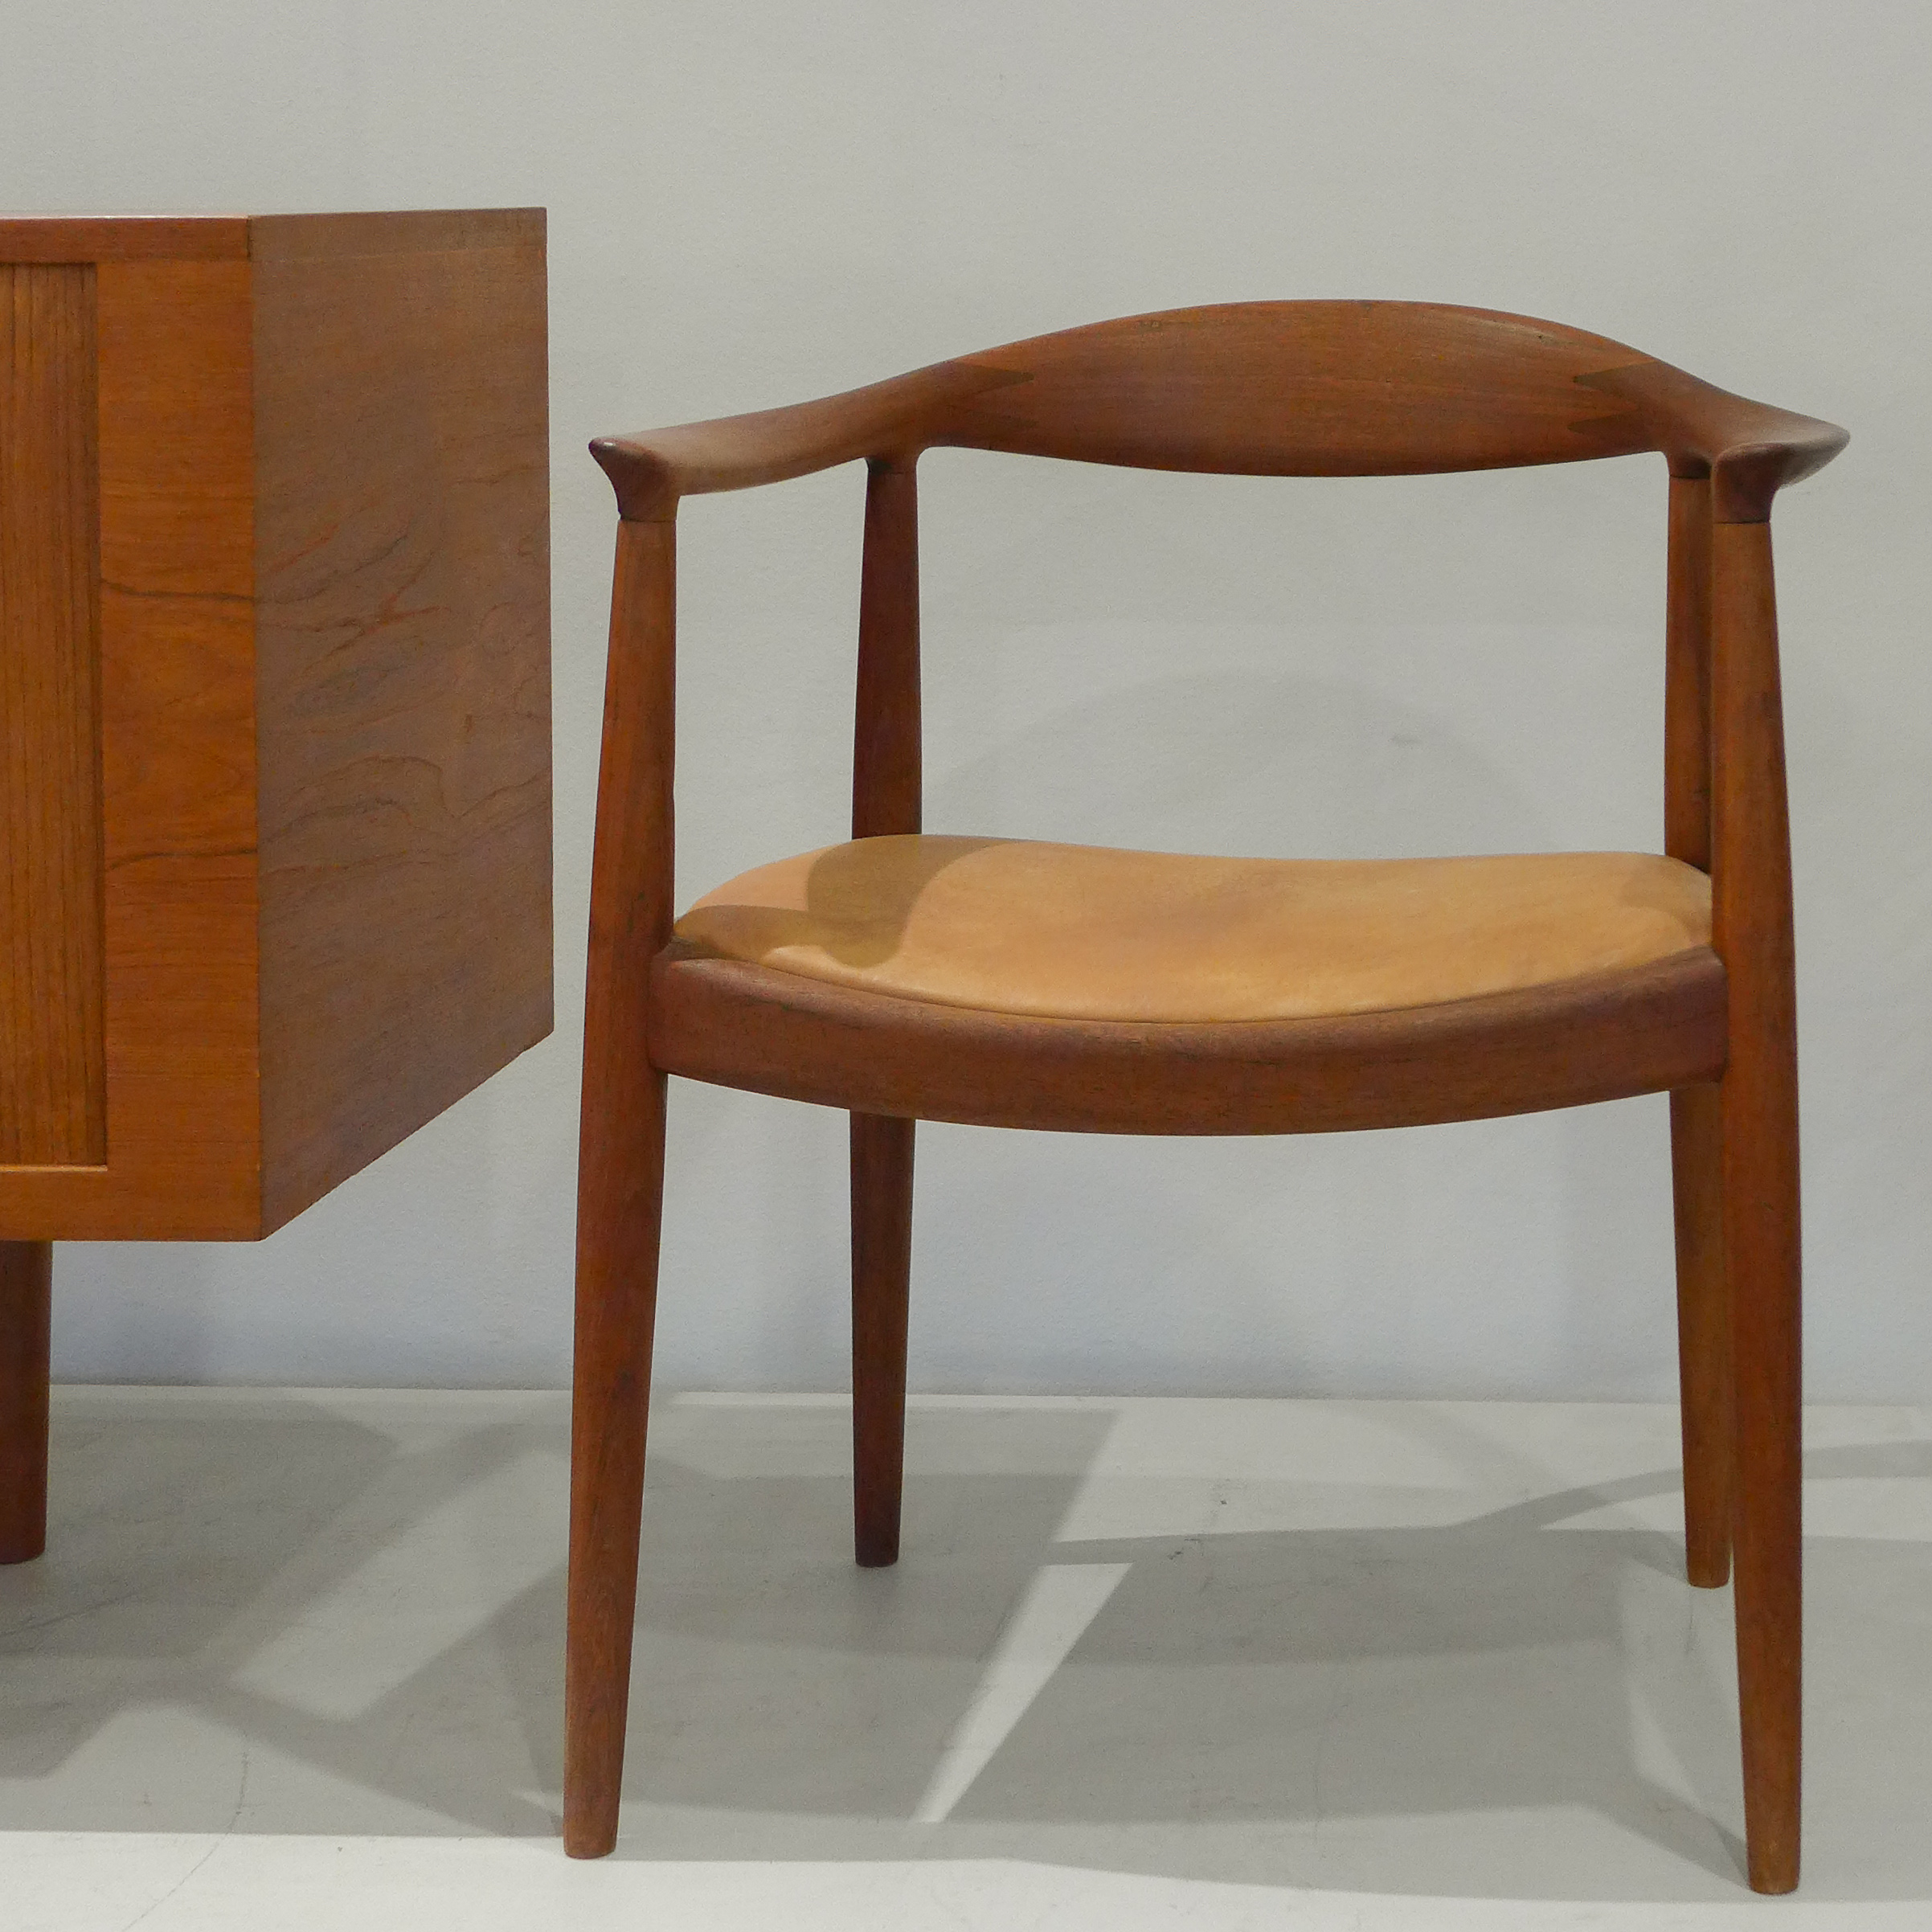 Danish Chair Design Classic The Chair By Hans Wegner 1949 Danish Design Review